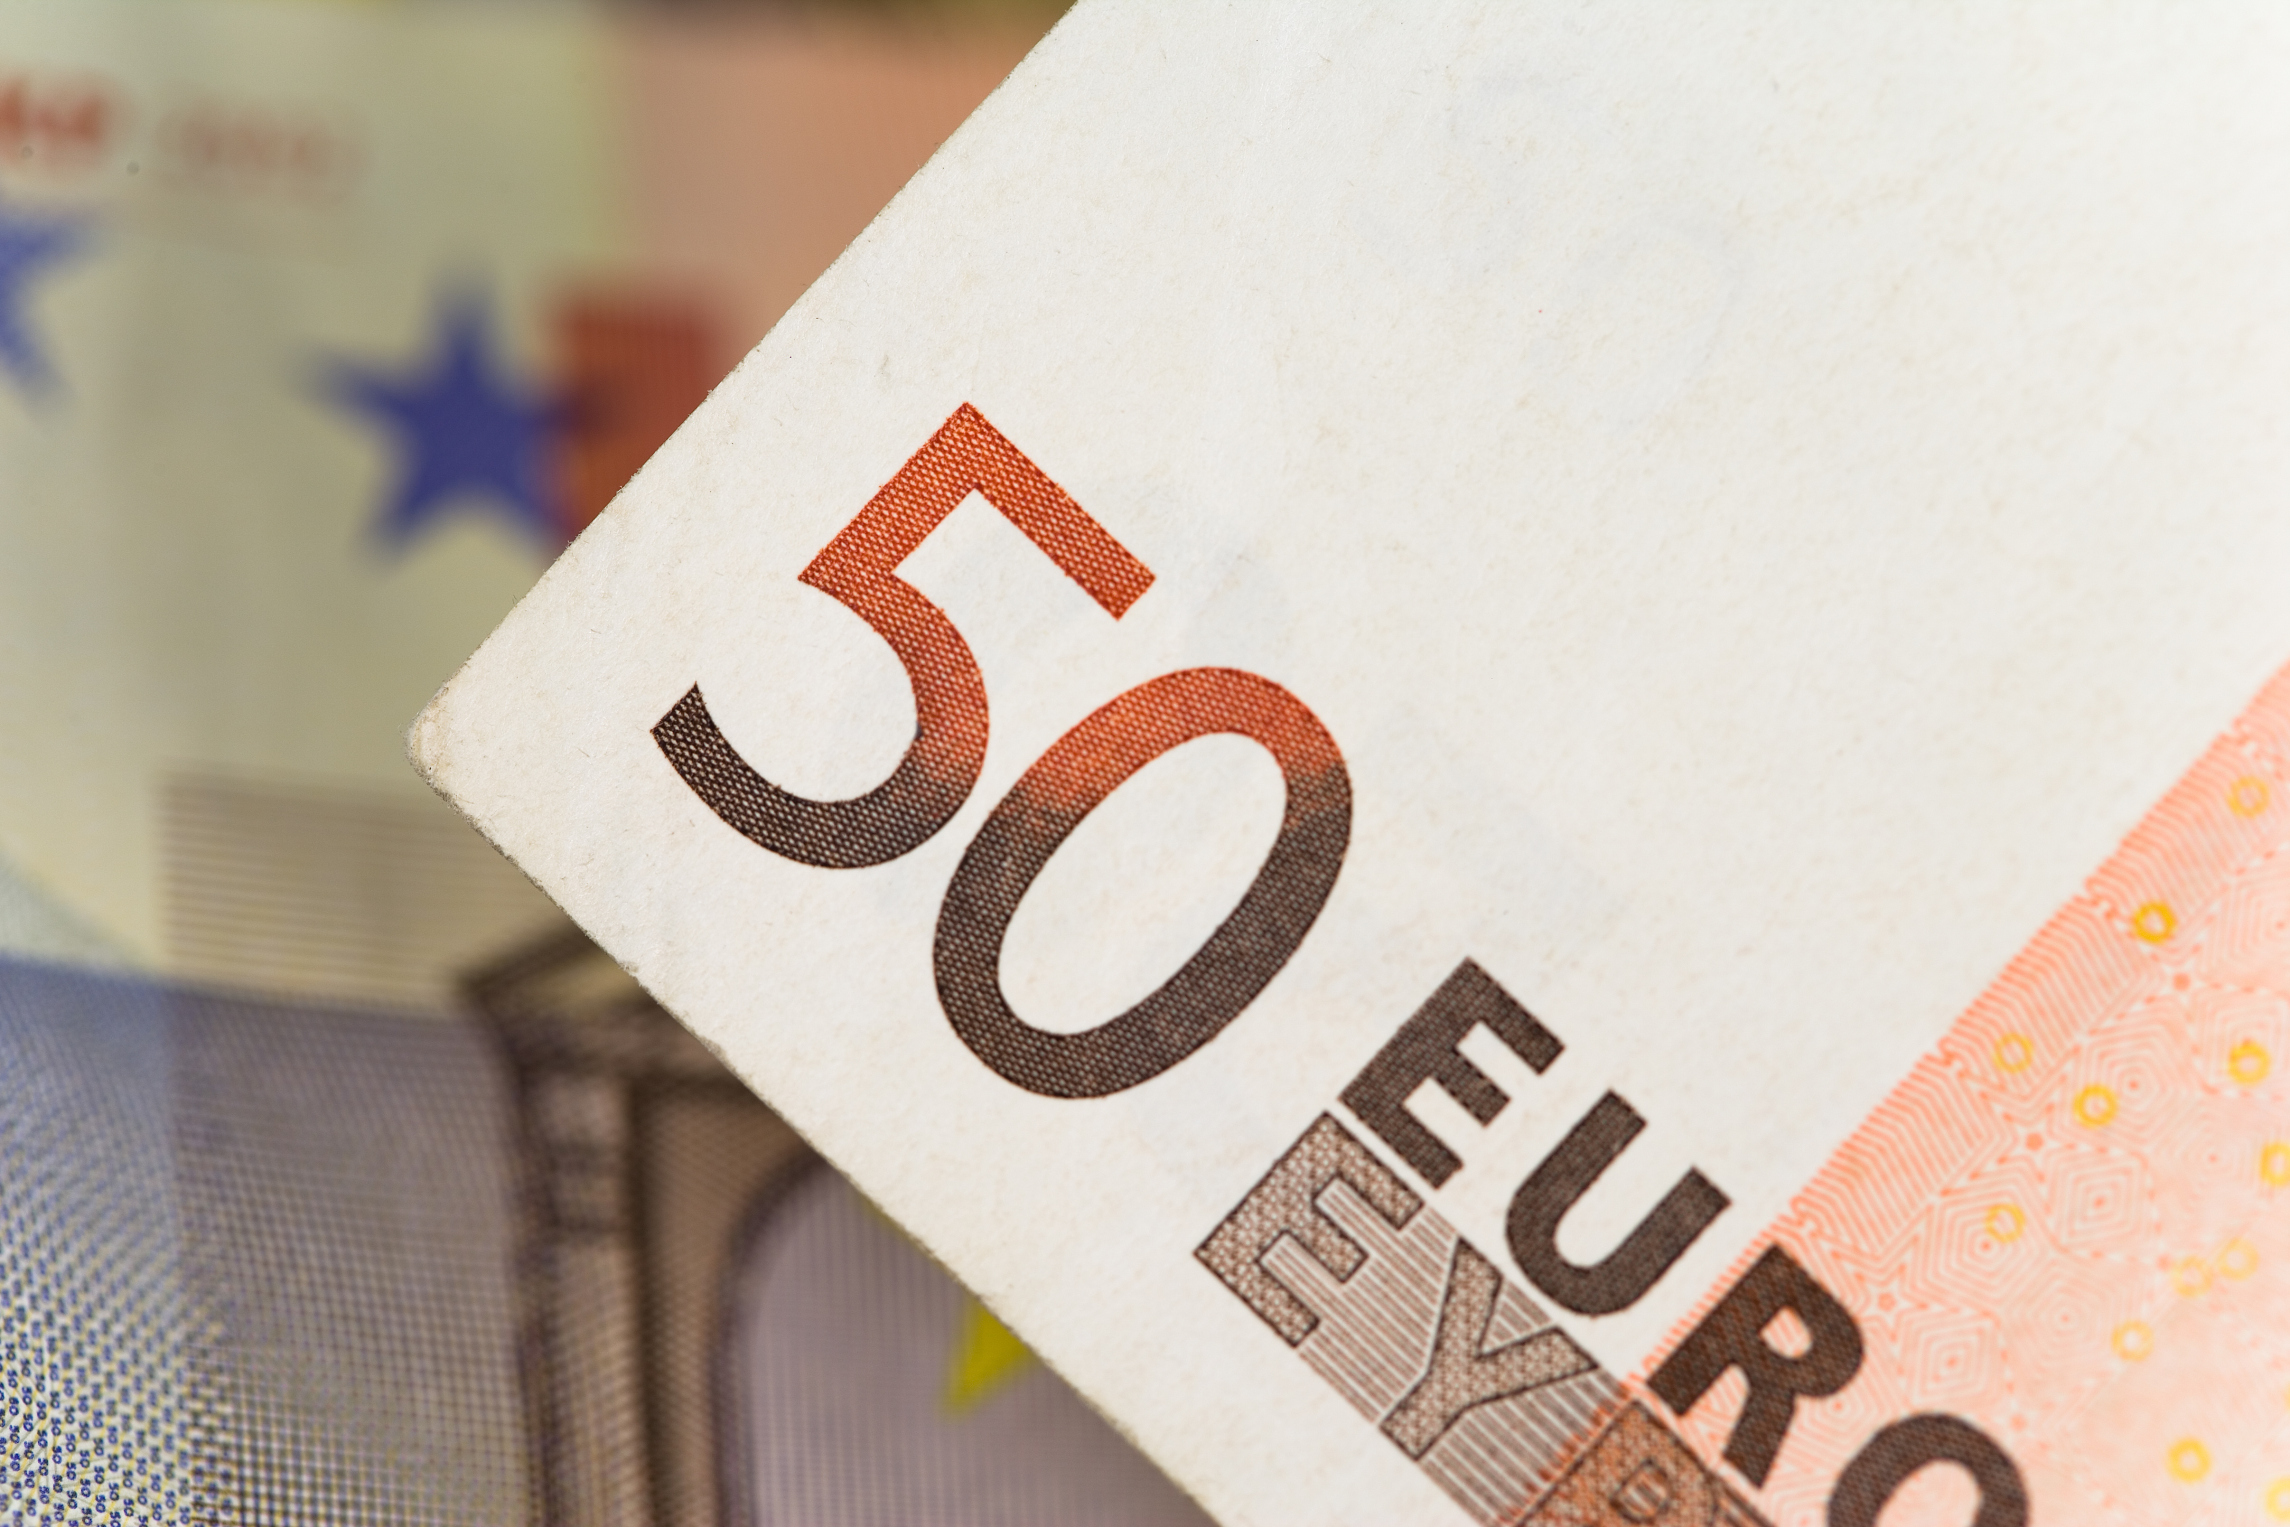 How to buy euros in us